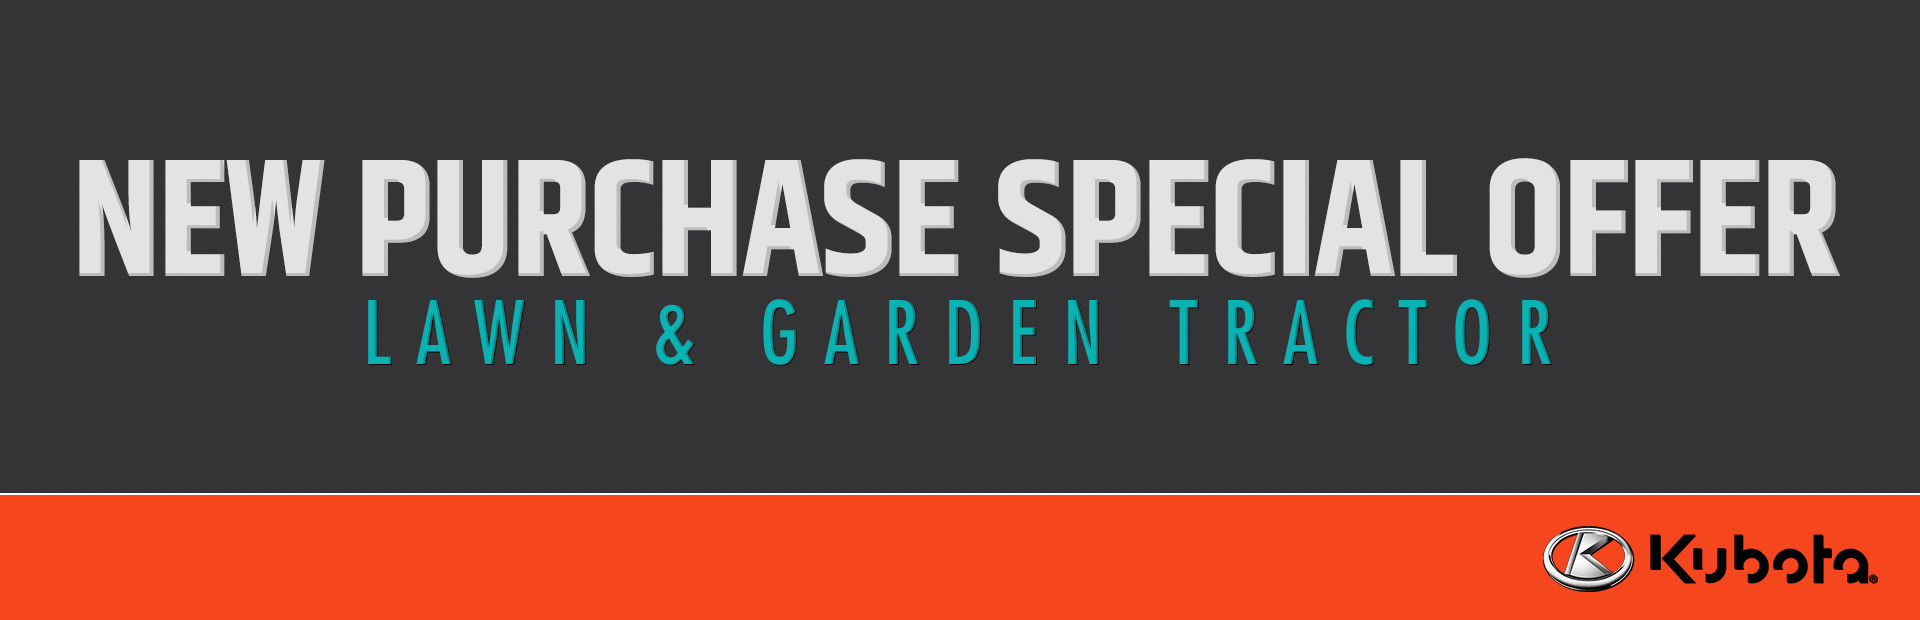 Kubota: New Purchase Special Offer - Lawn & Garden Tractor